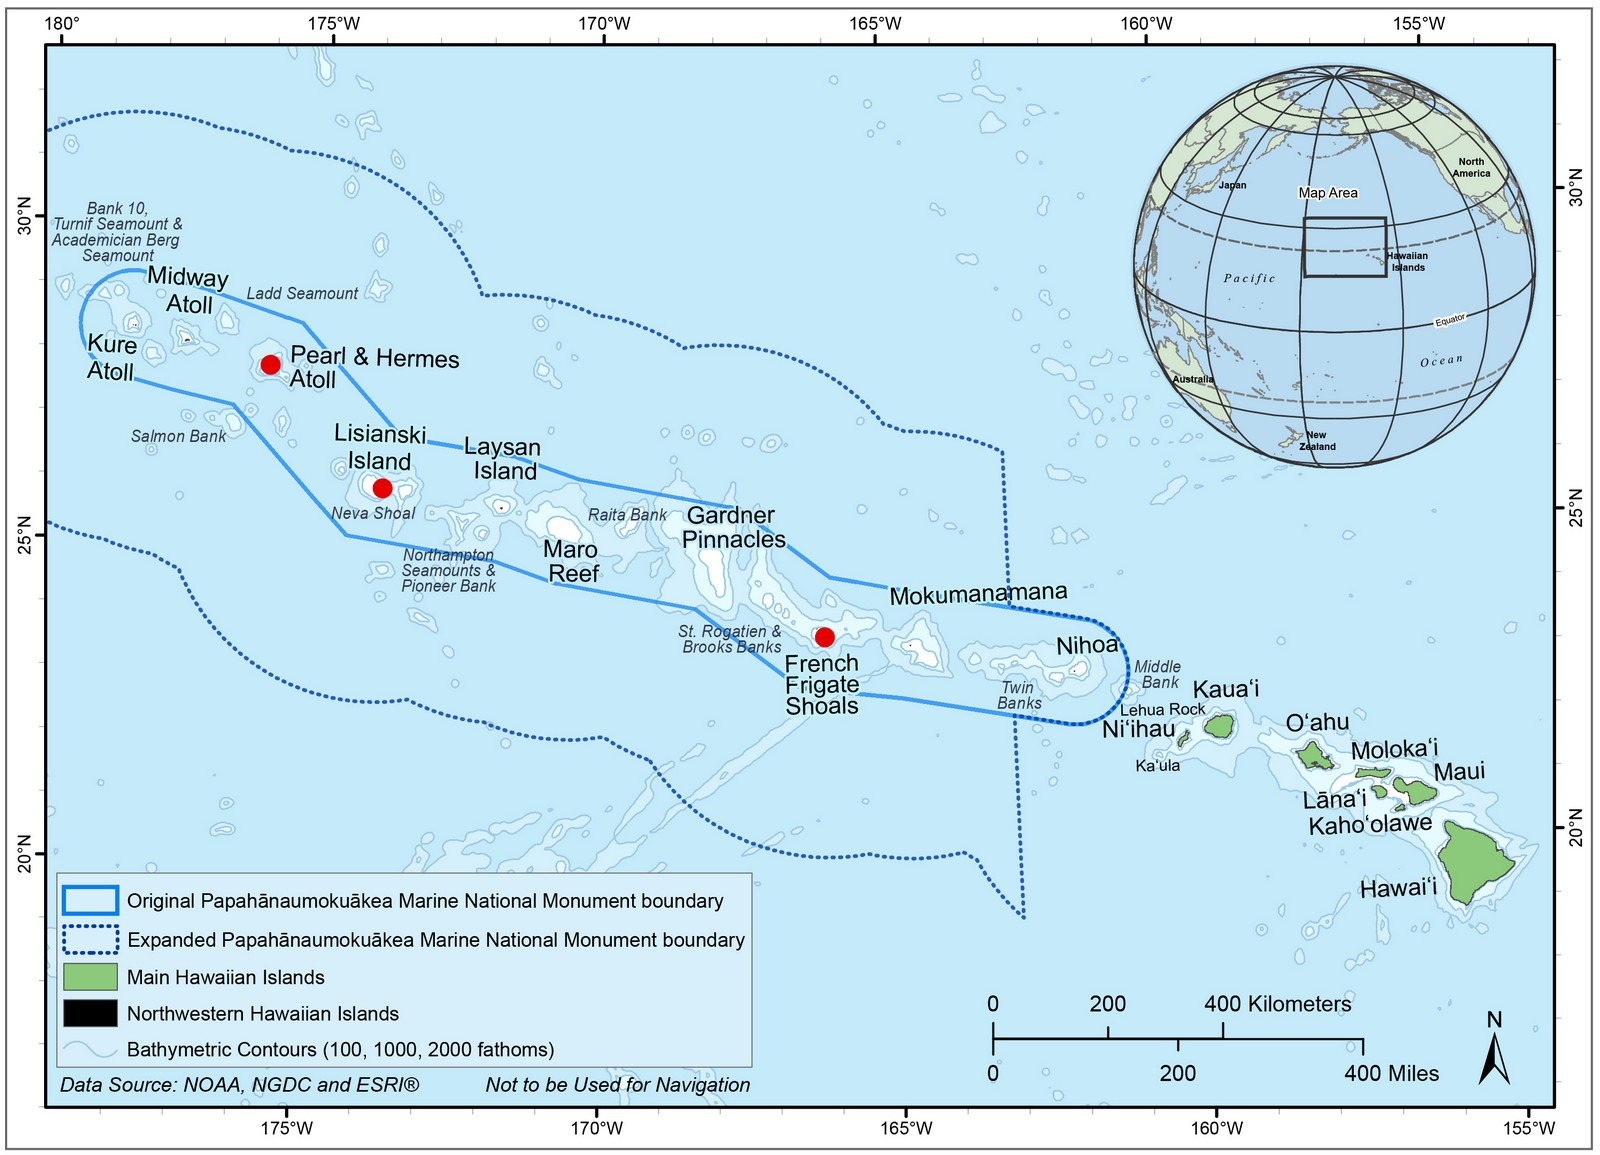 Map showing the atolls of the Papahānaumokuākea Marine National Monument. Red dots note the three areas surveyed by the research team.